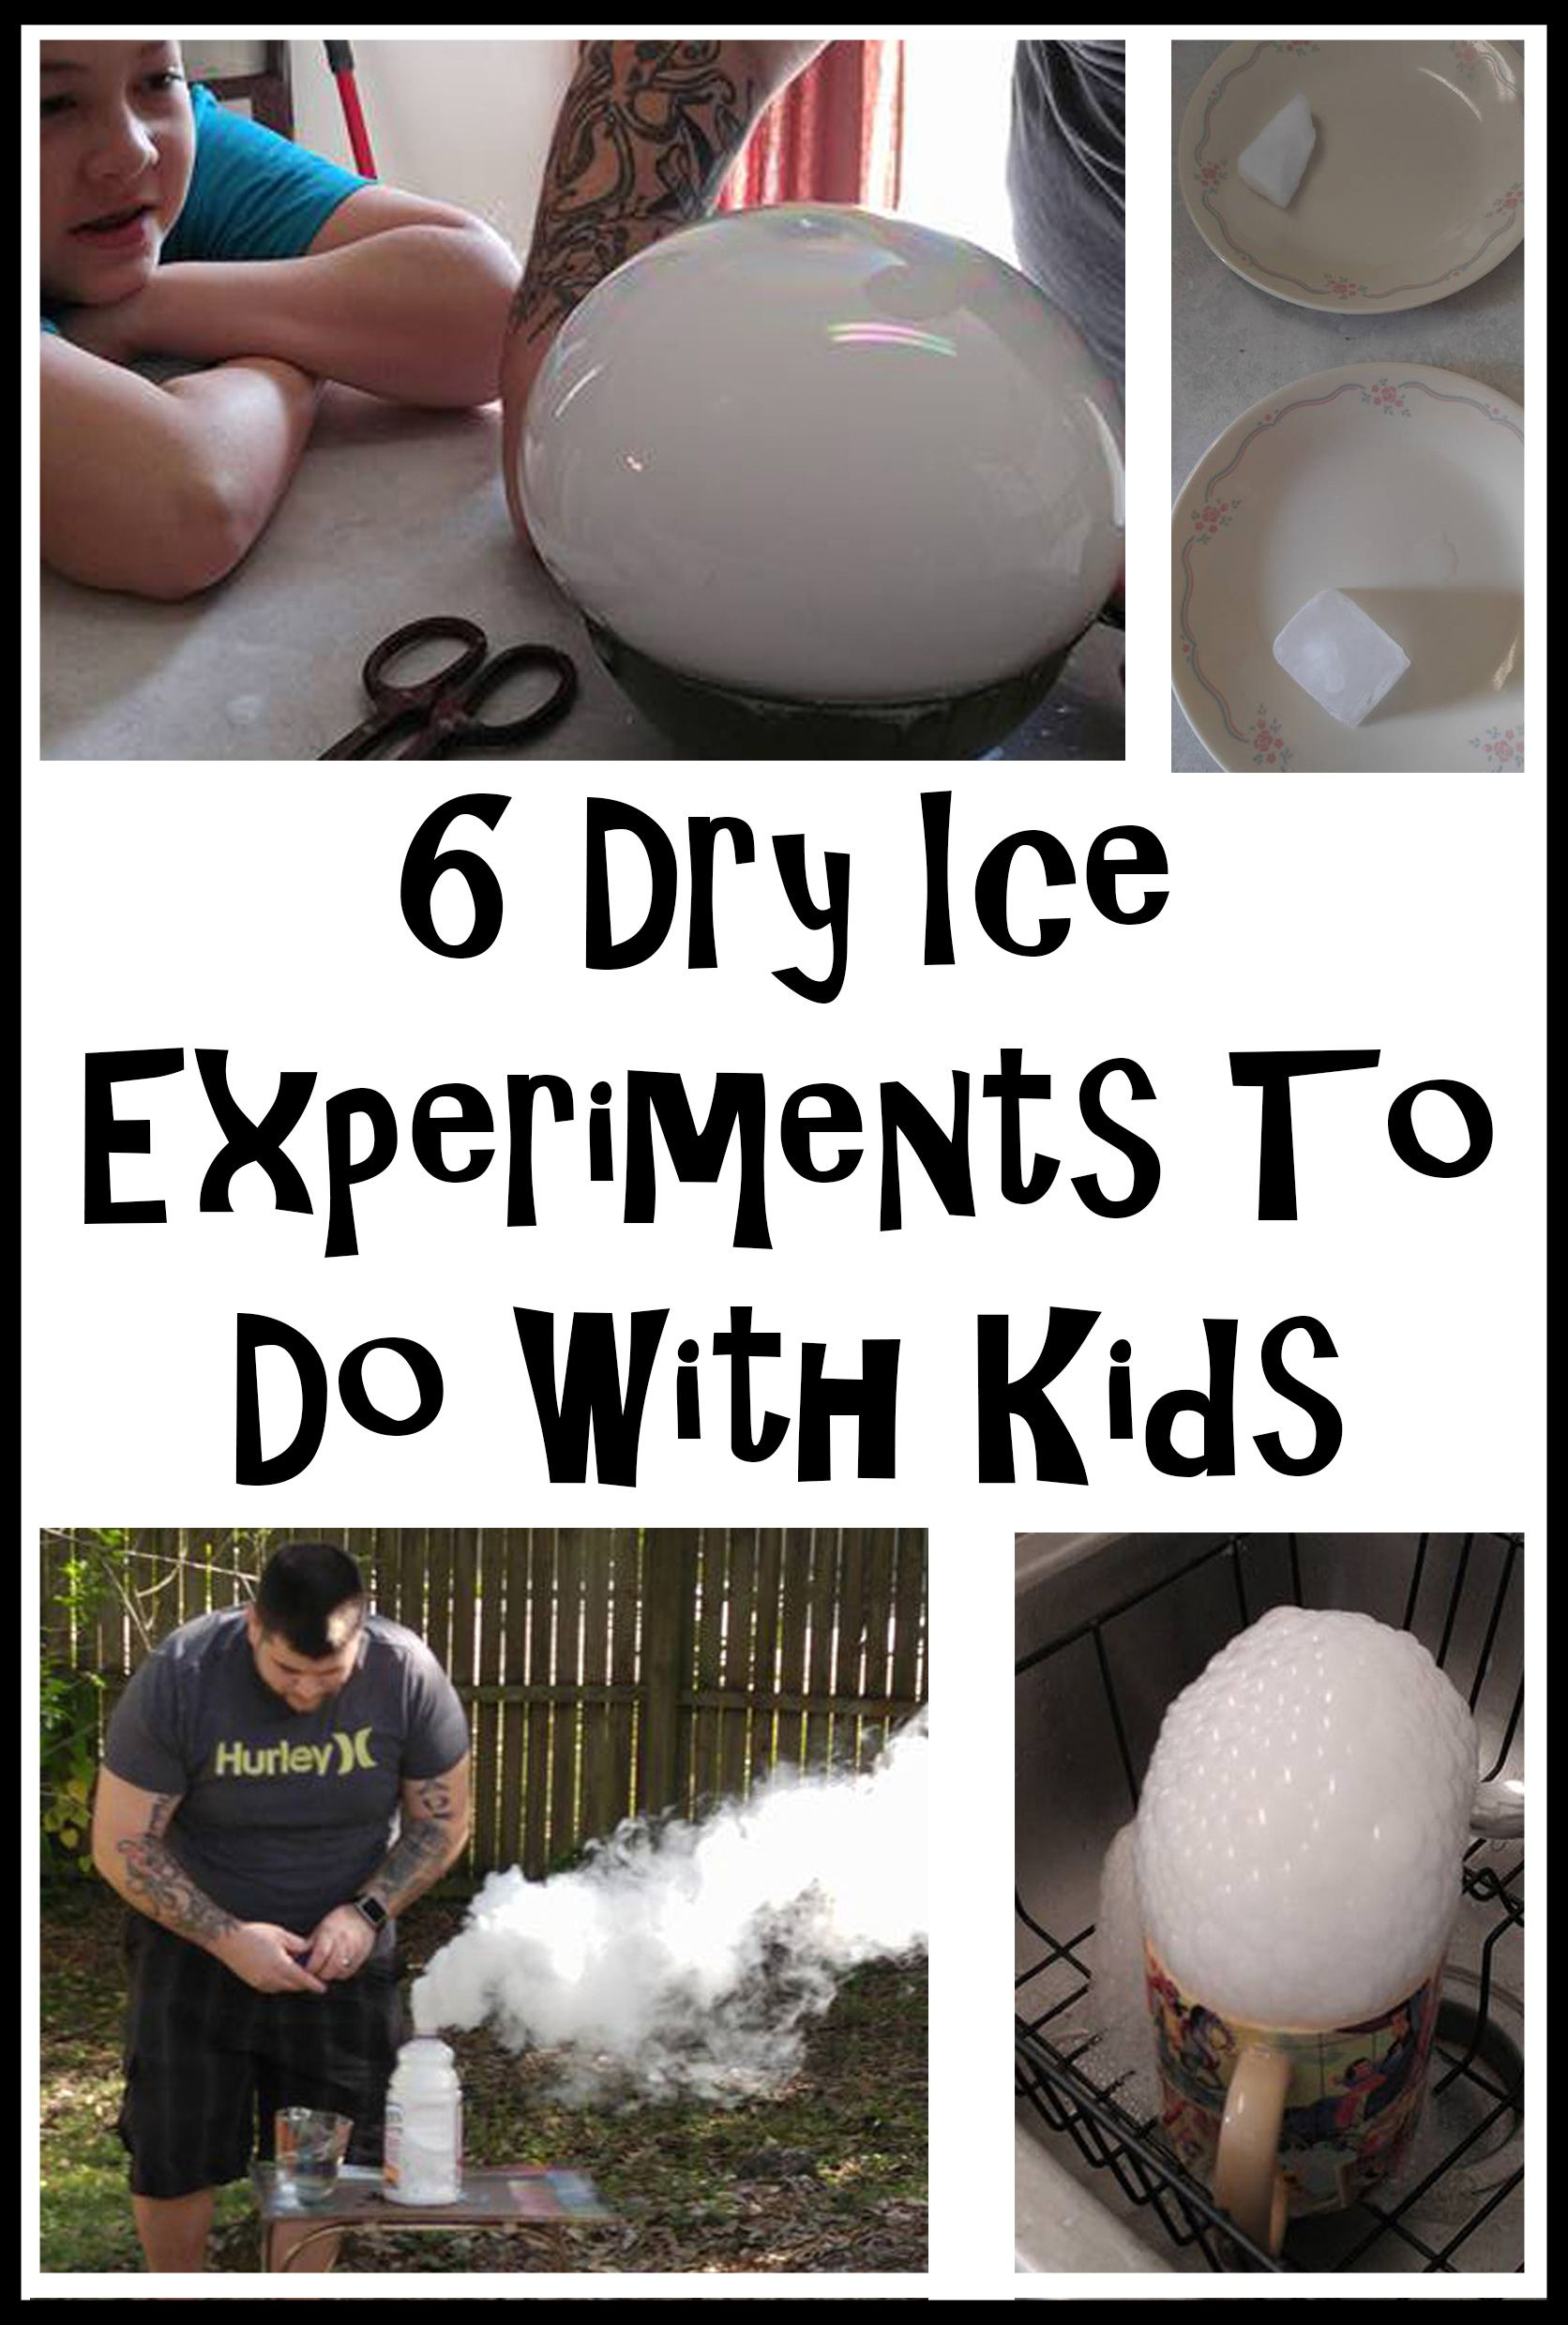 6 Dry Ice Experiments To Do With Kids Dry Ice Bombs